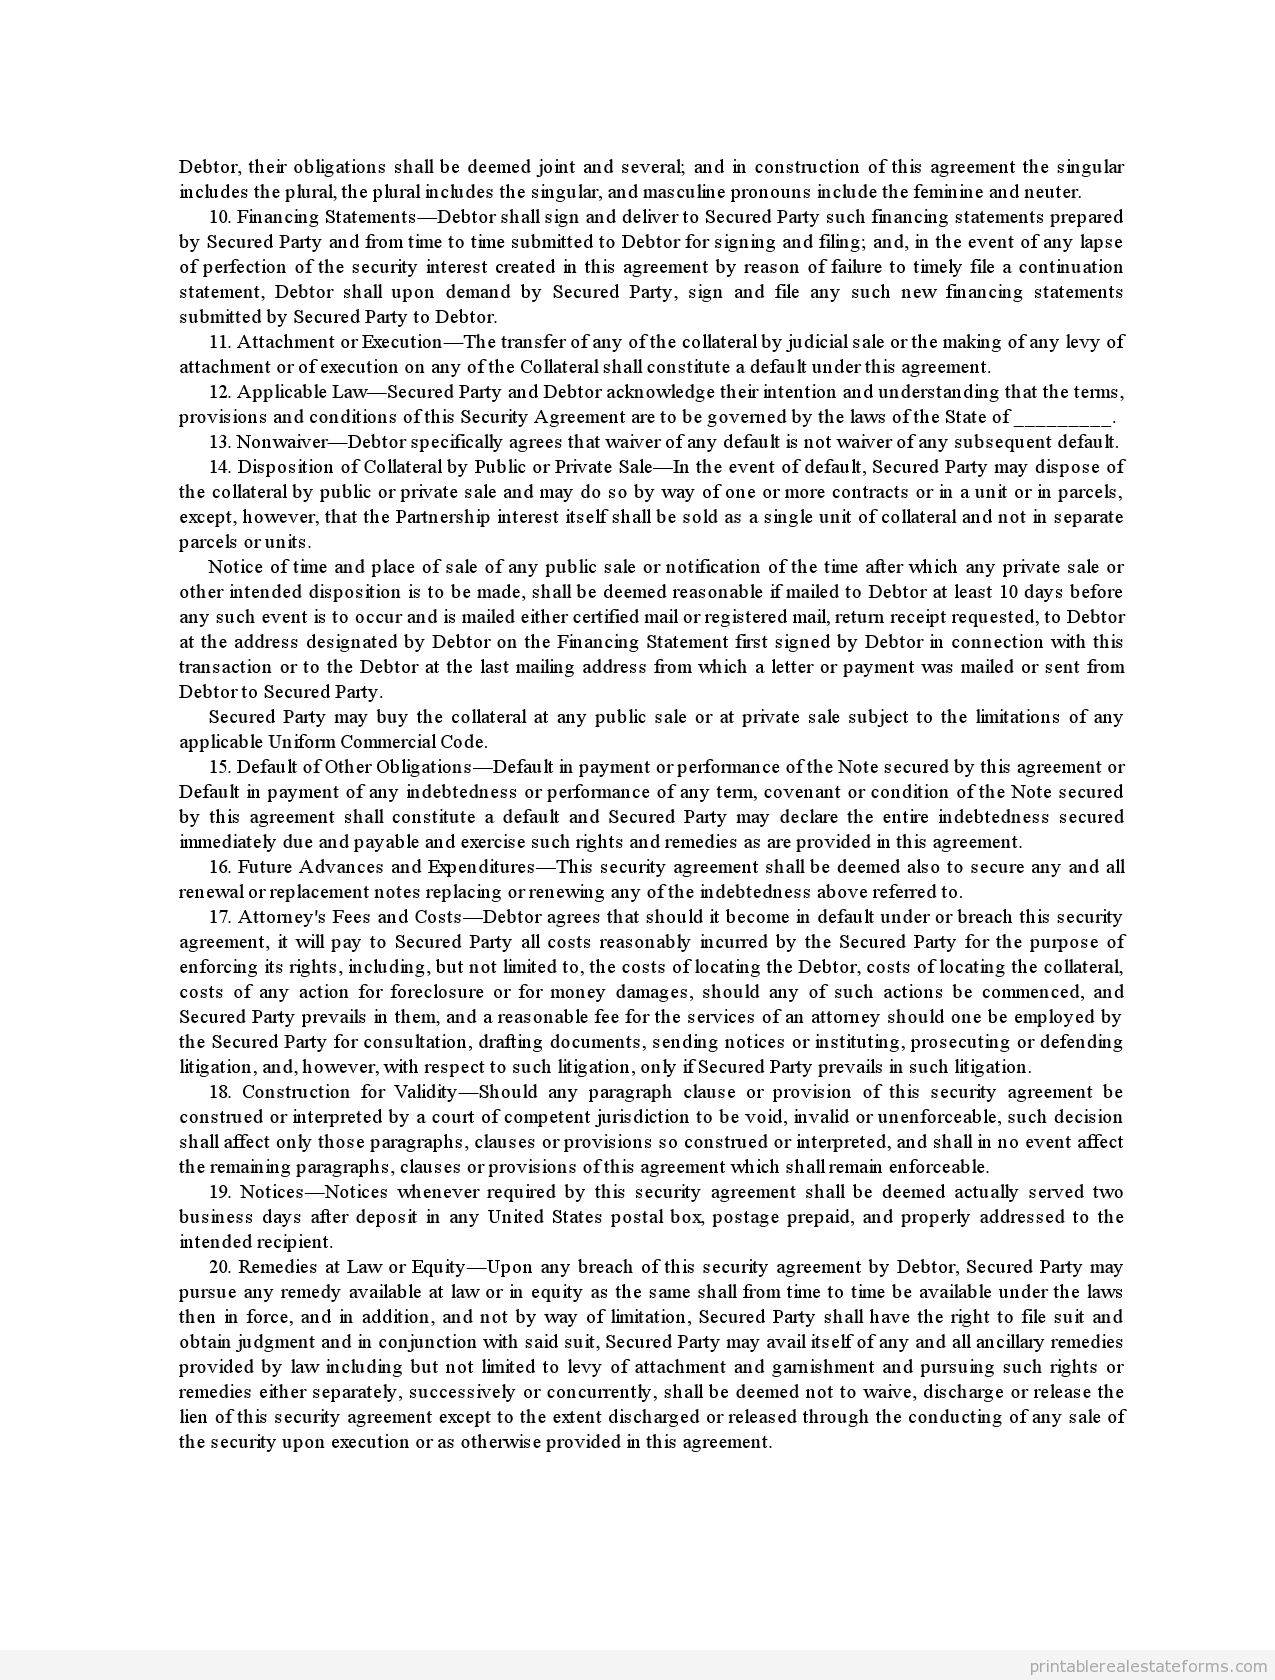 Printable security agreement template 2015 – Security Agreement Template